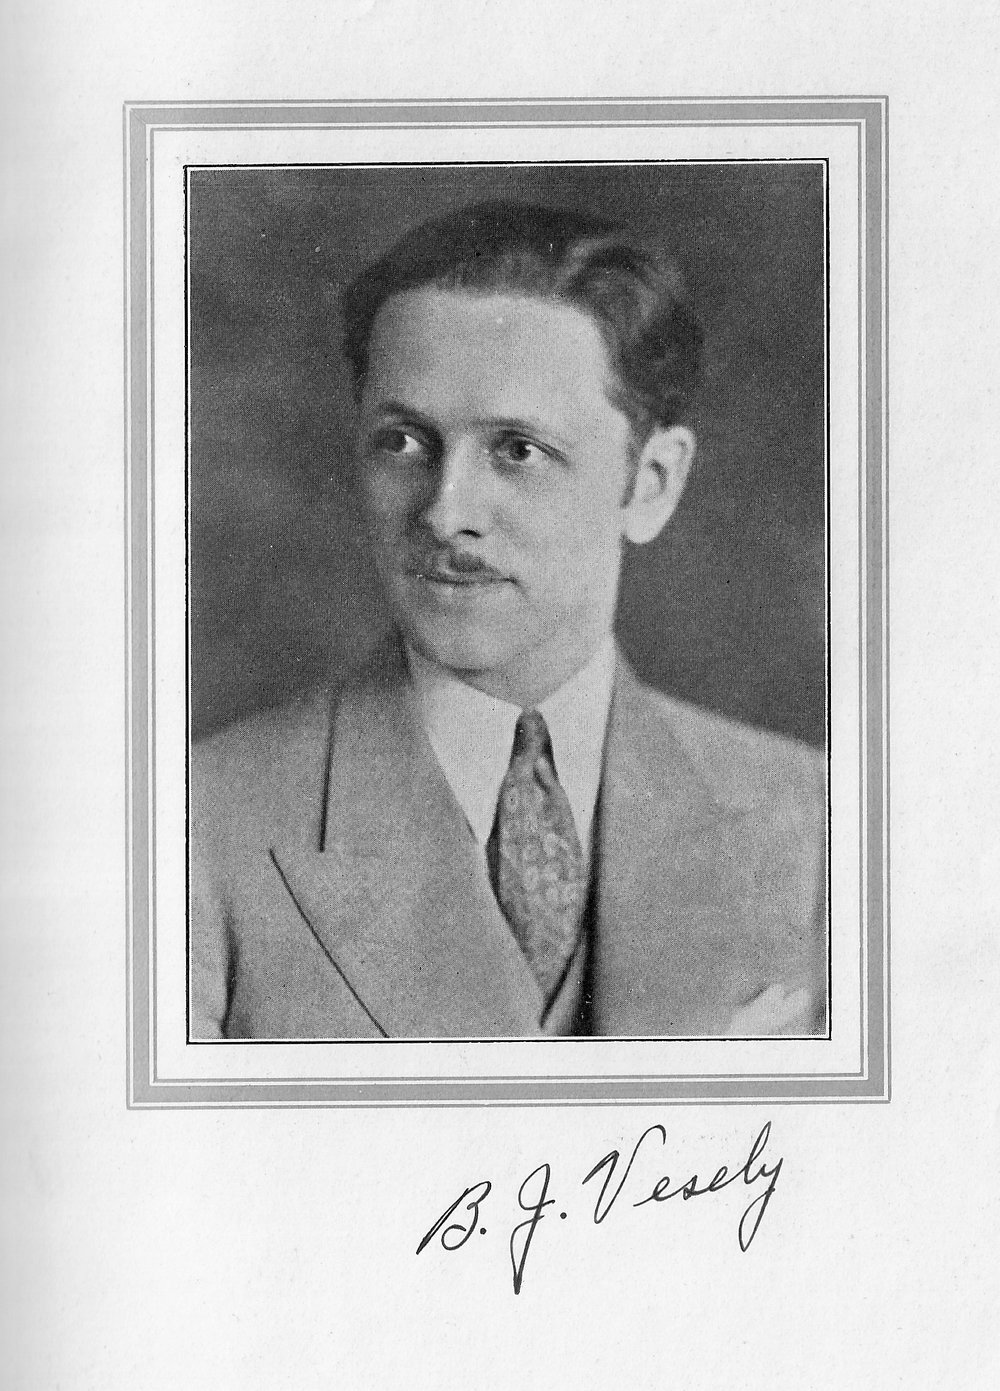 Bernard J. Vesely, from the 1932 Reflector, the yearbook of Whiting High School.